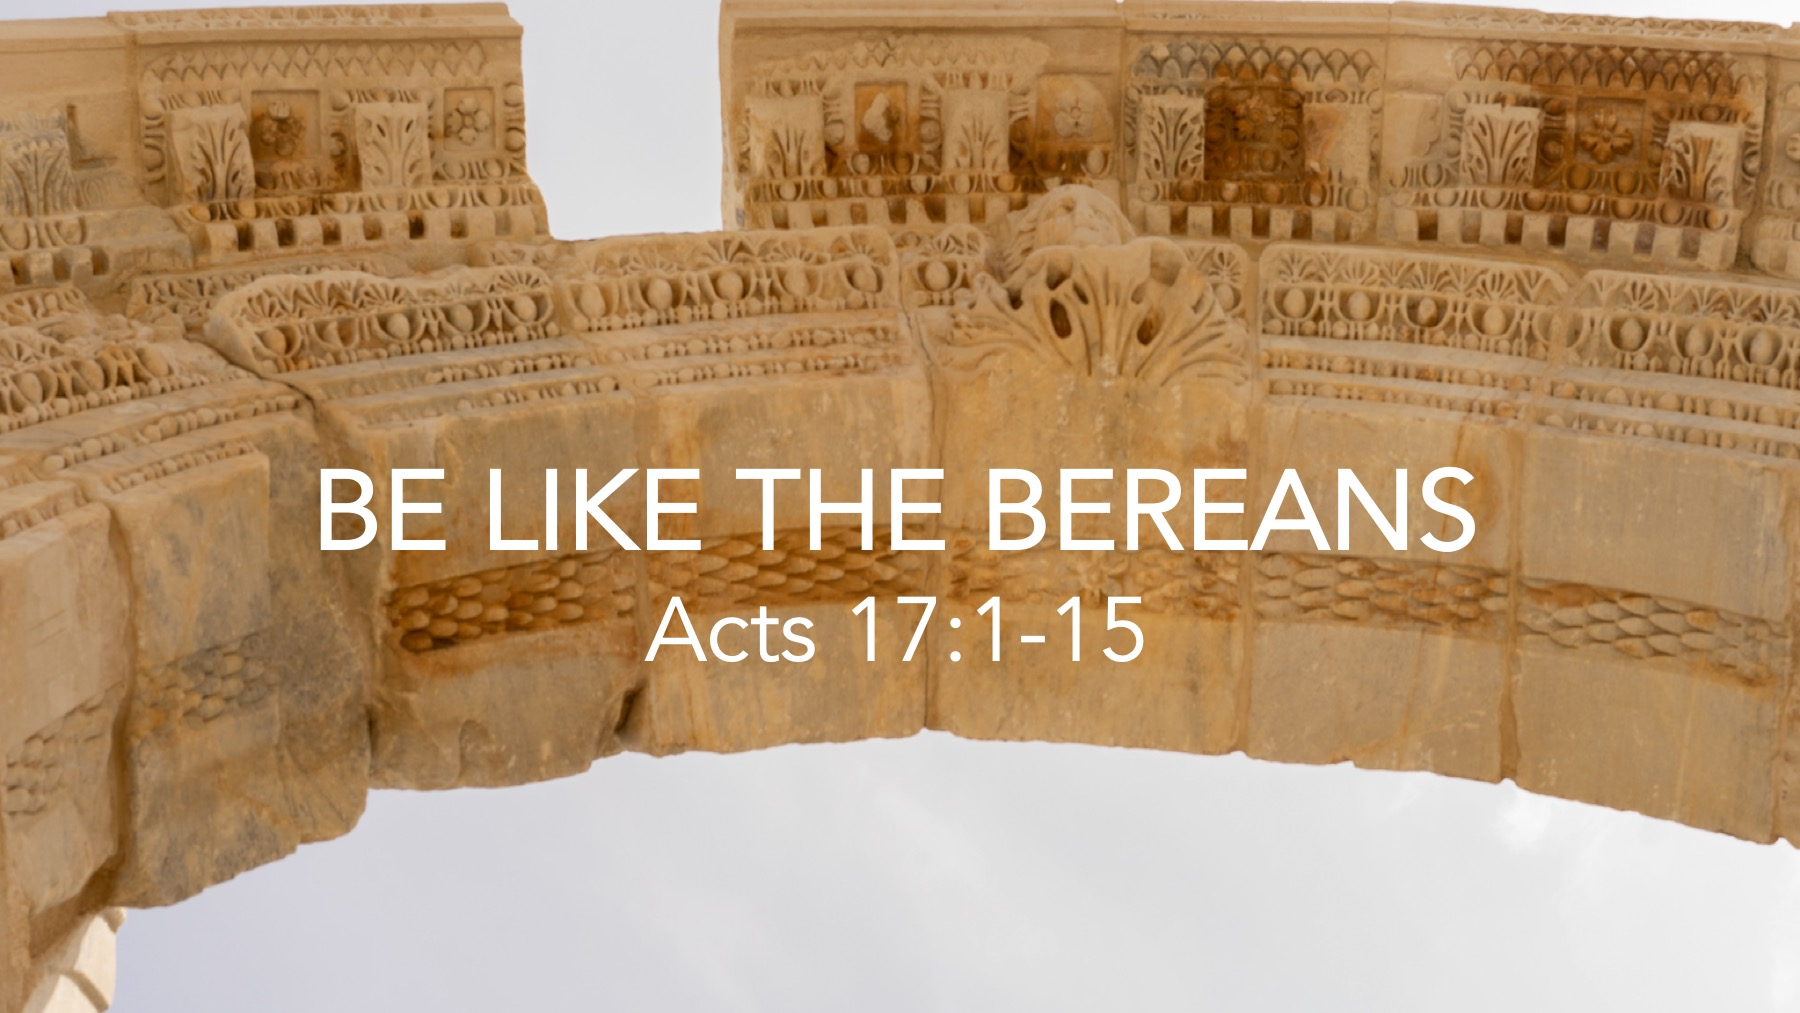 Be Like the Bereans